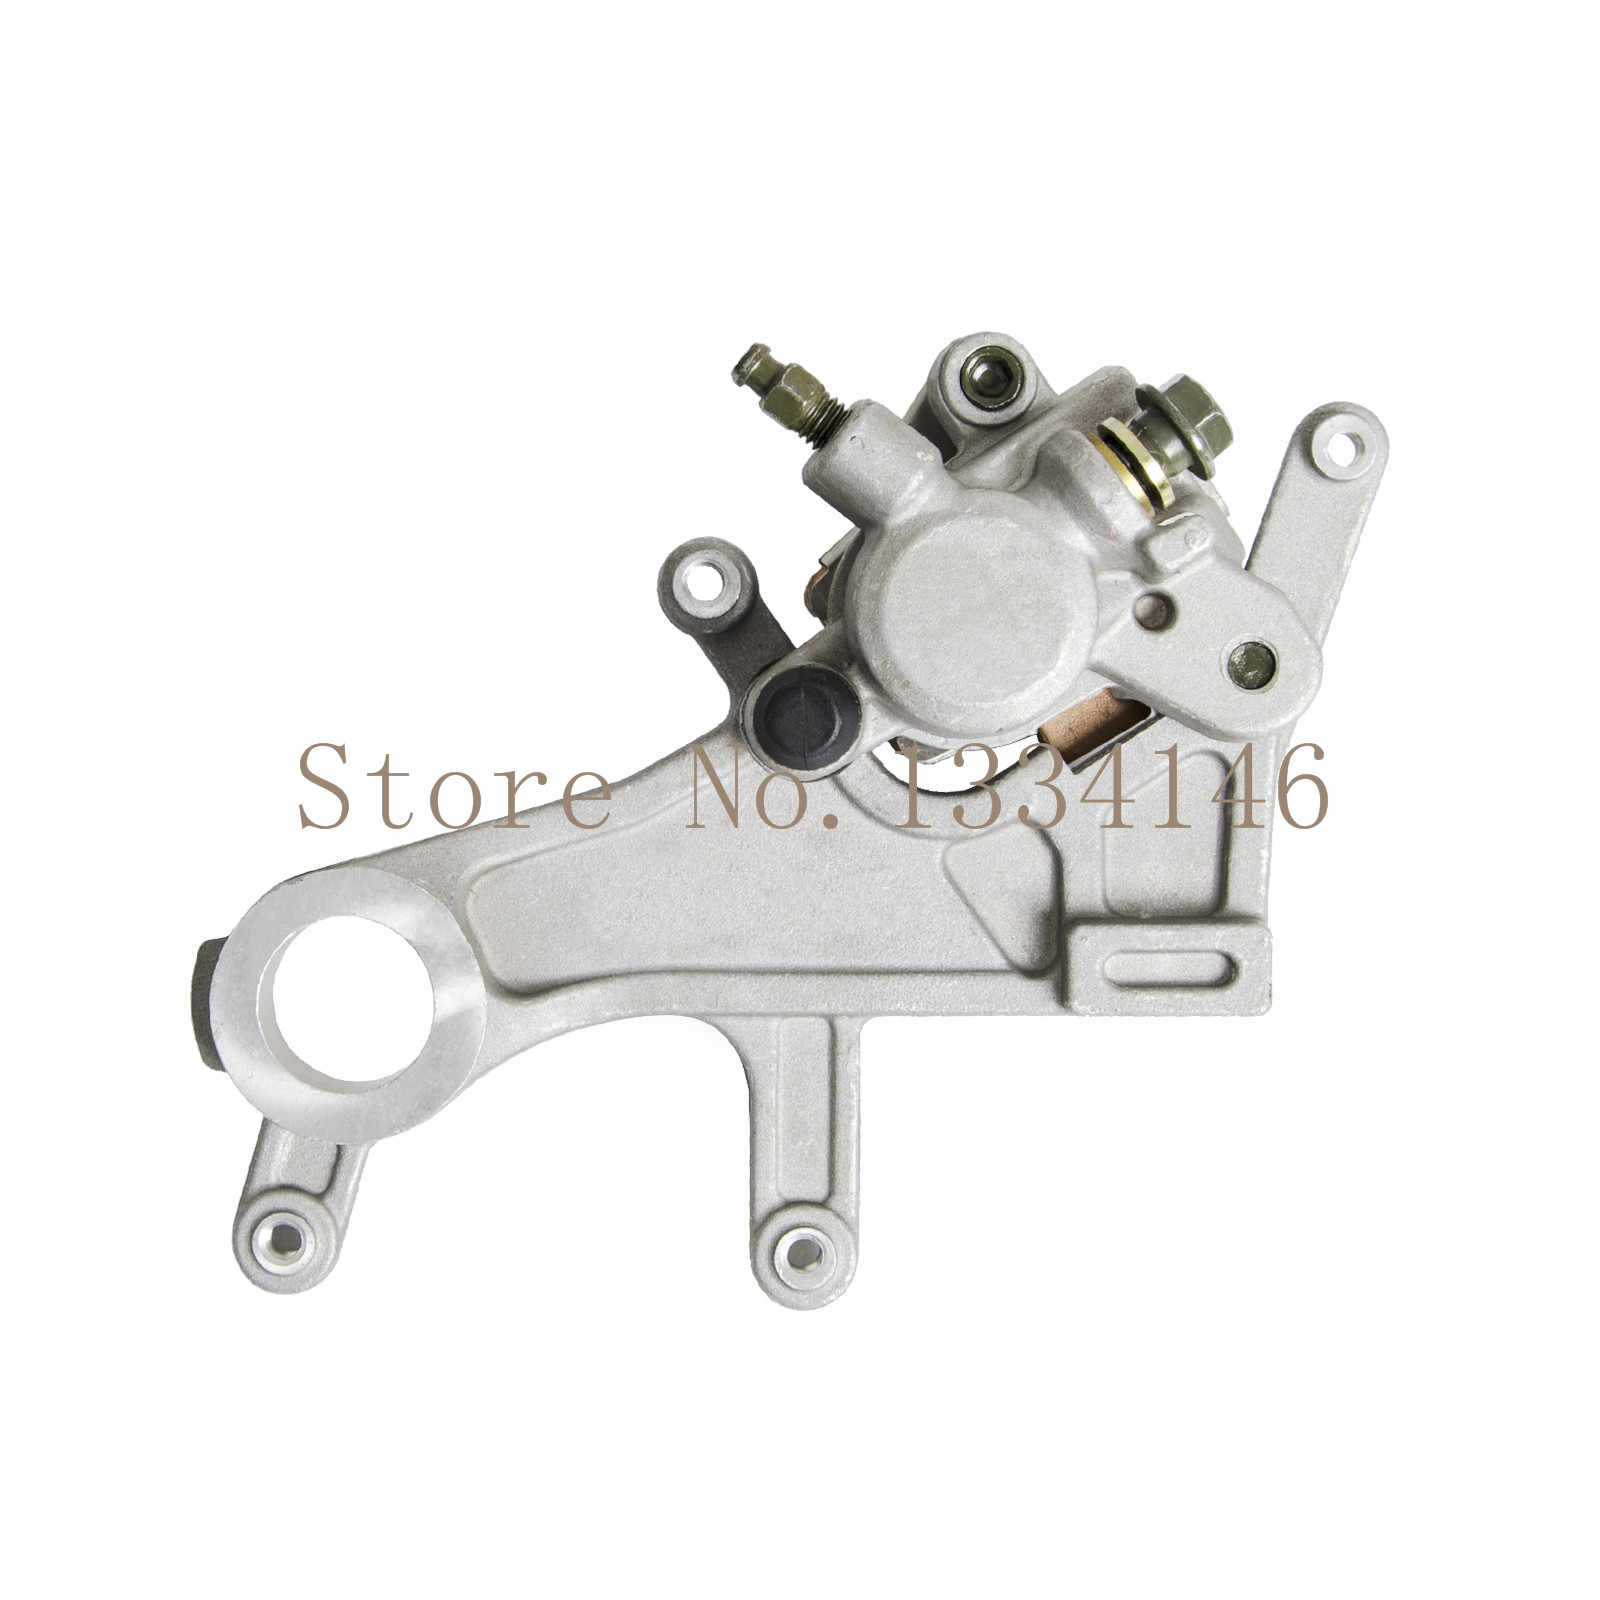 small resolution of  detail feedback questions about motorcycle rear ke caliper for on 2016 honda xr650r how to wire